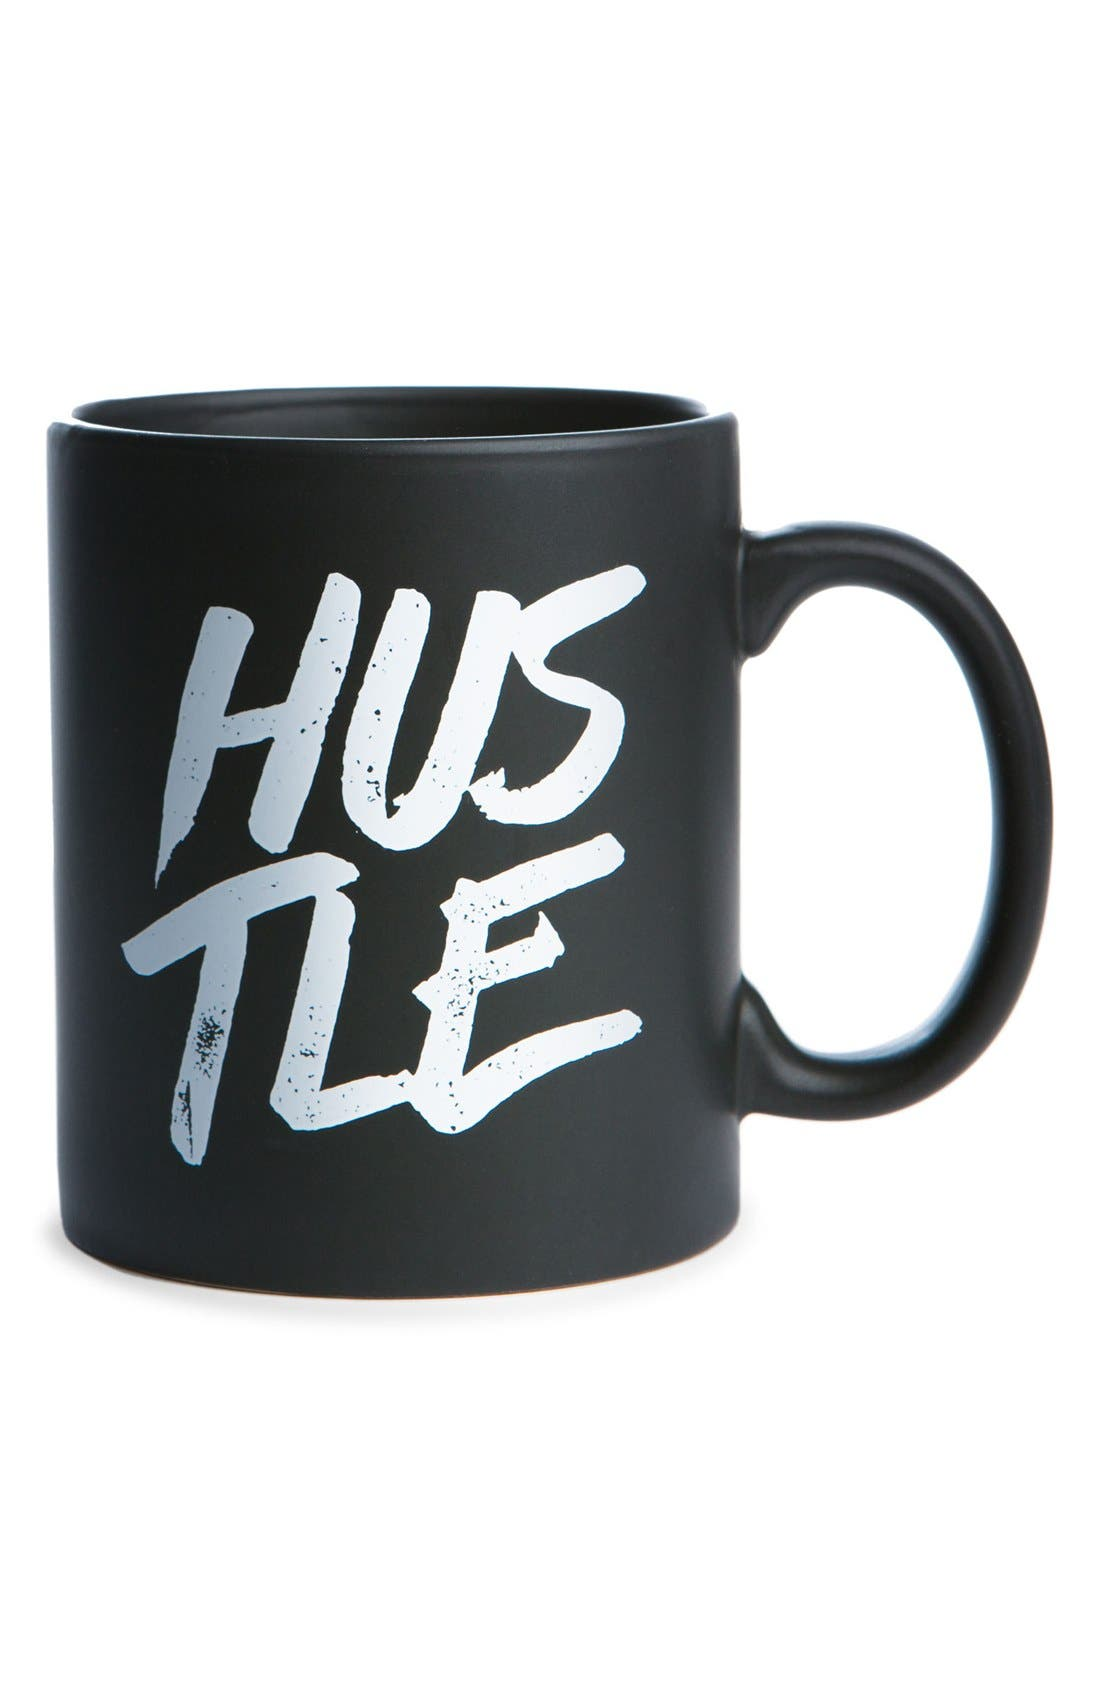 Alternate Image 1 Selected - The Created Co. 'Hustle' Mug